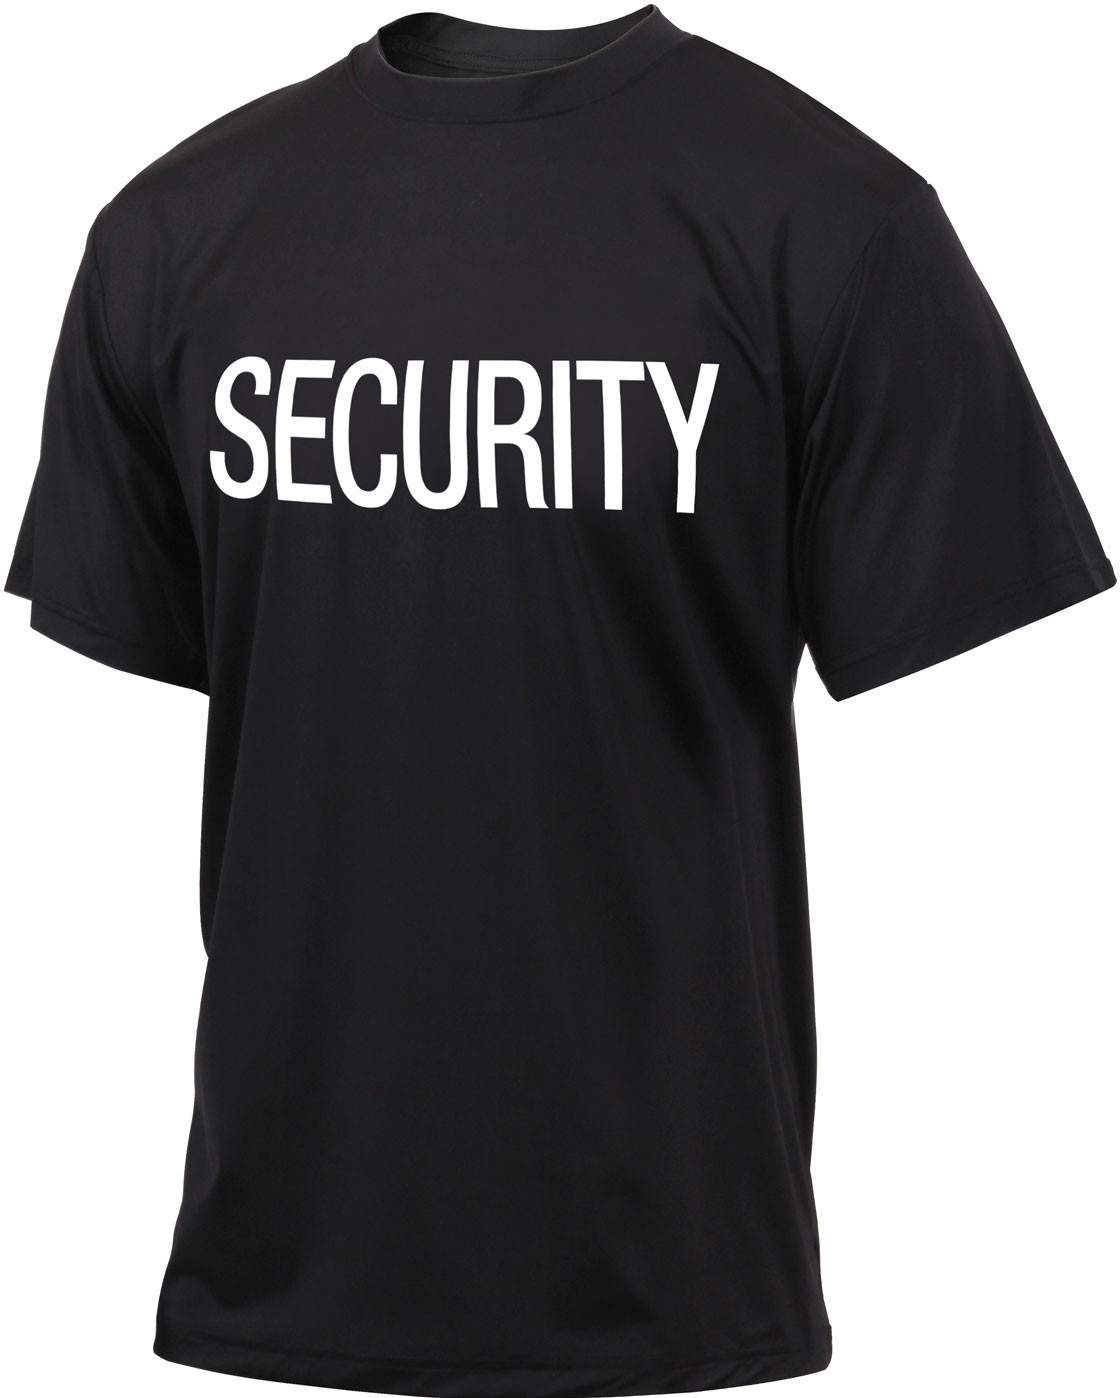 More Views. Black Quick Dry Moisture Wicking Security Performance T-Shirt 2955891b4cc